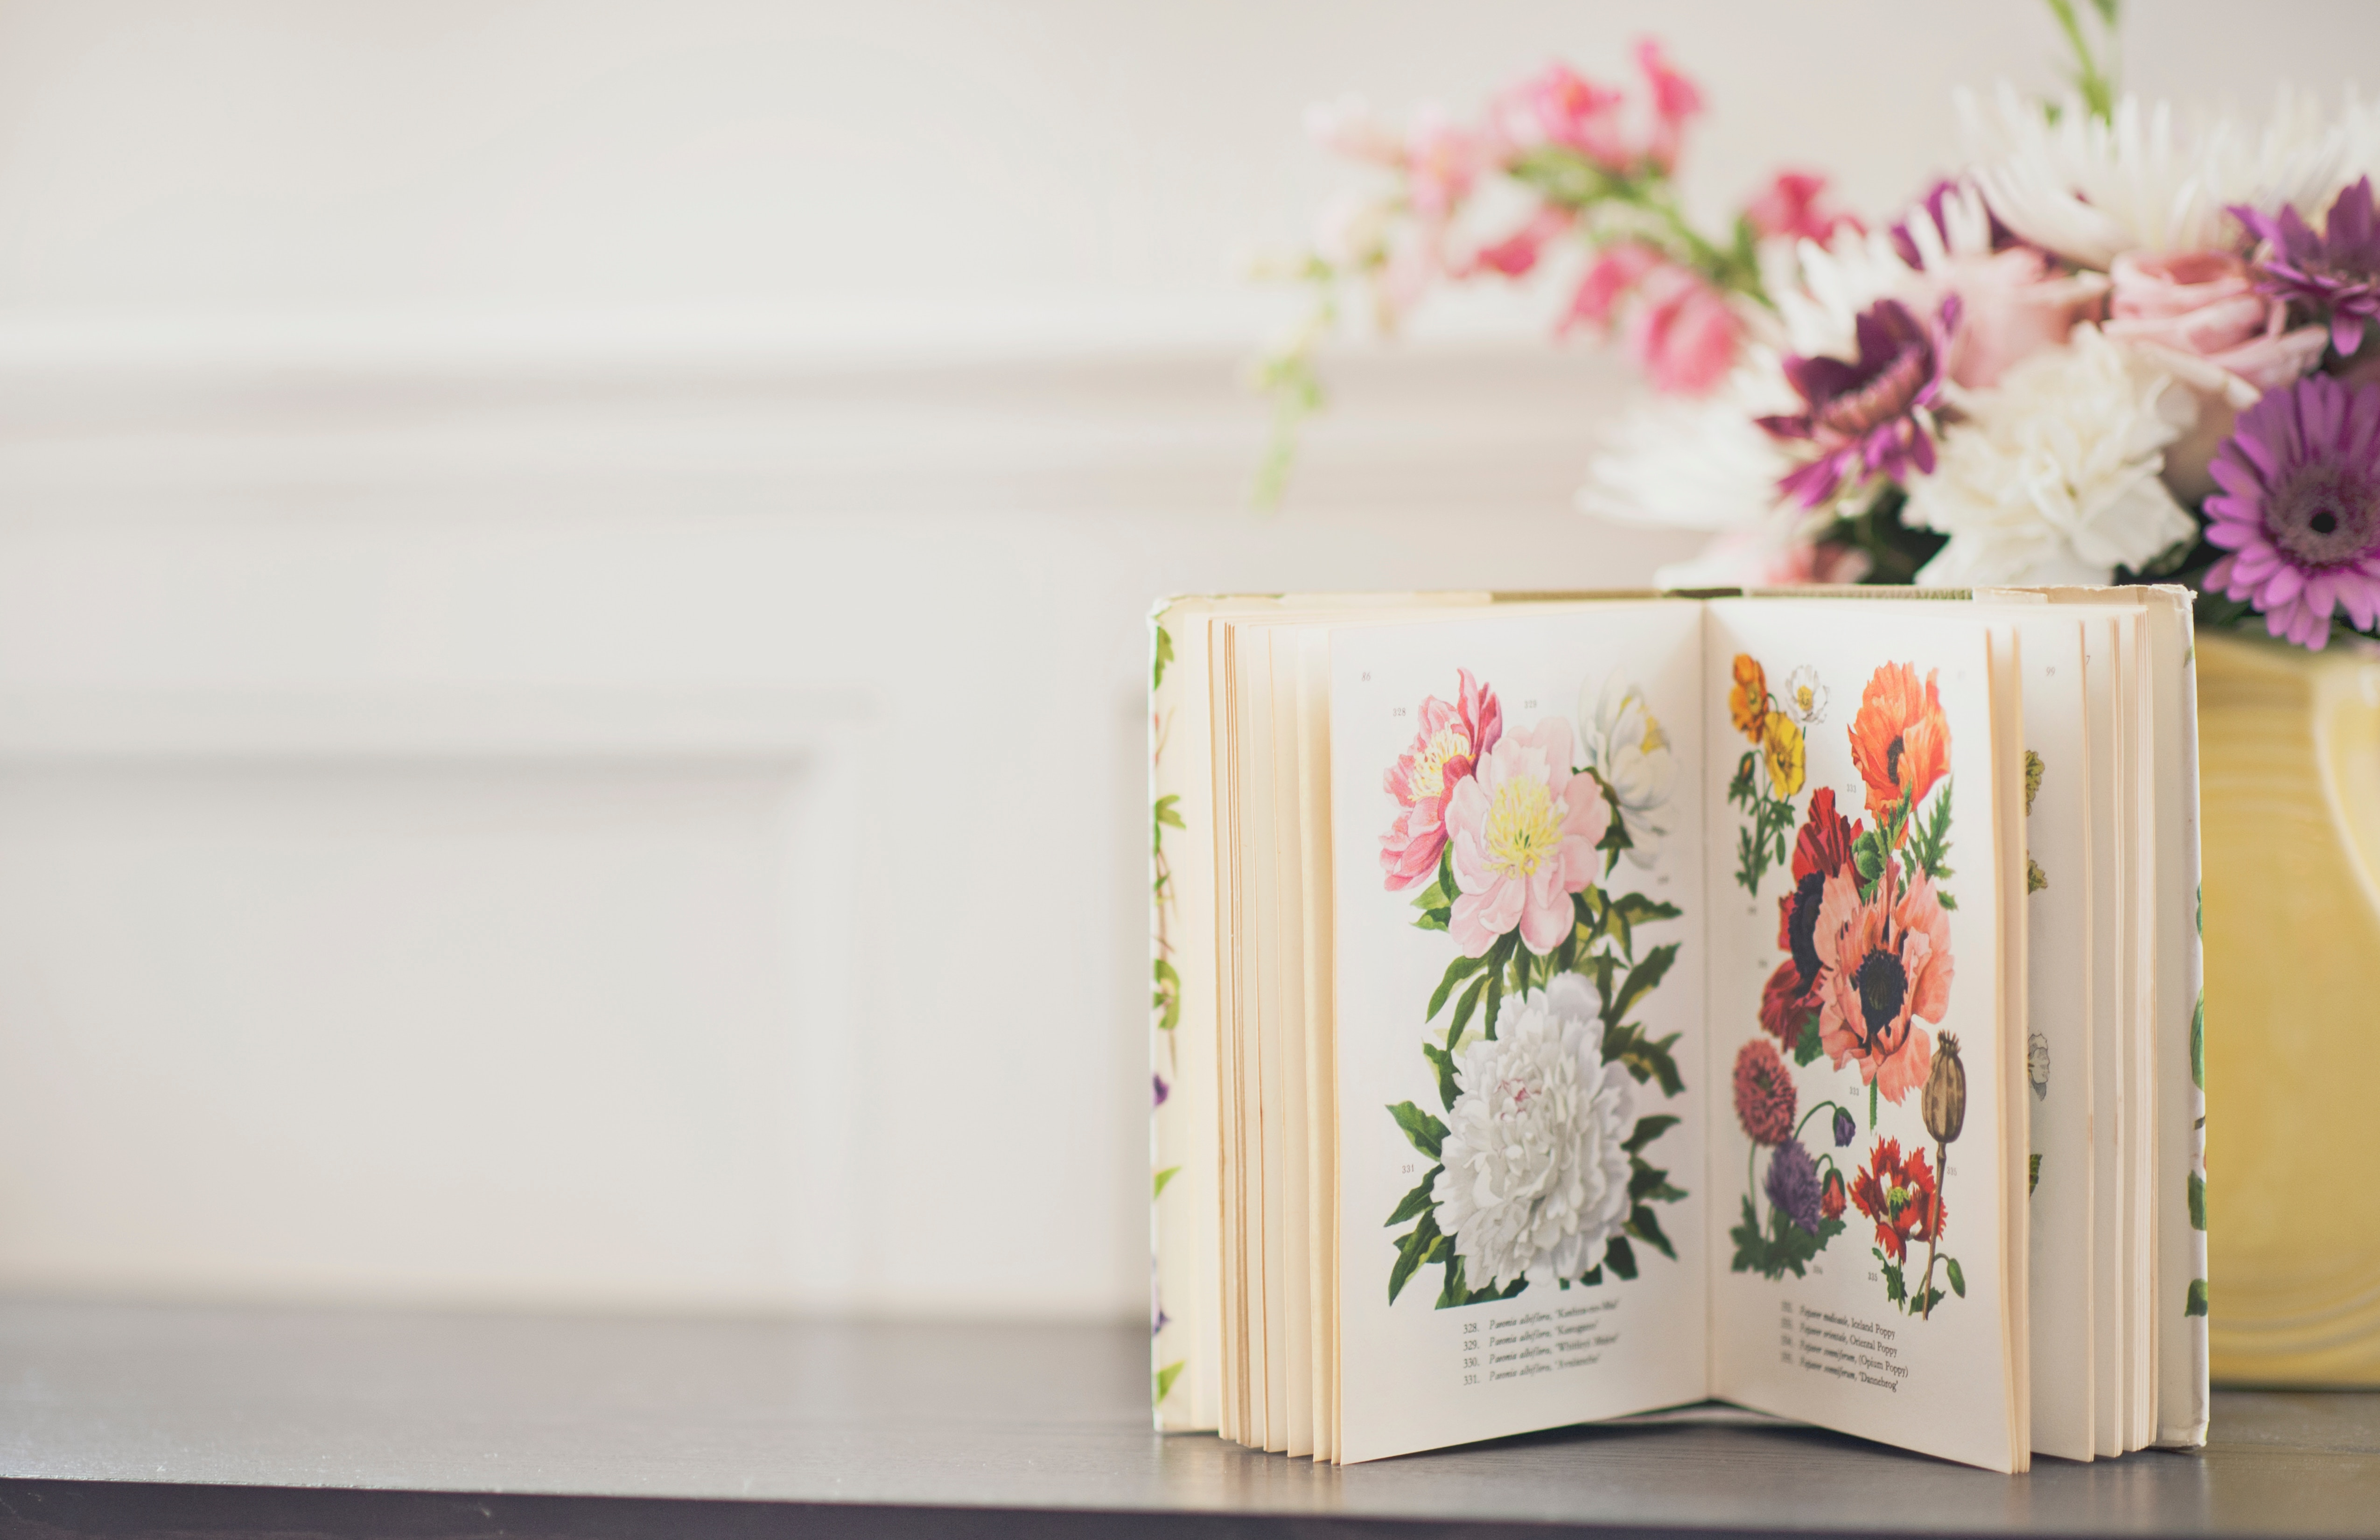 An image of a book of flowers, a treasured gift left behind by a loved one as discussed in bespoke funeral services by Derren Gallo of Blossom Ceremonies.